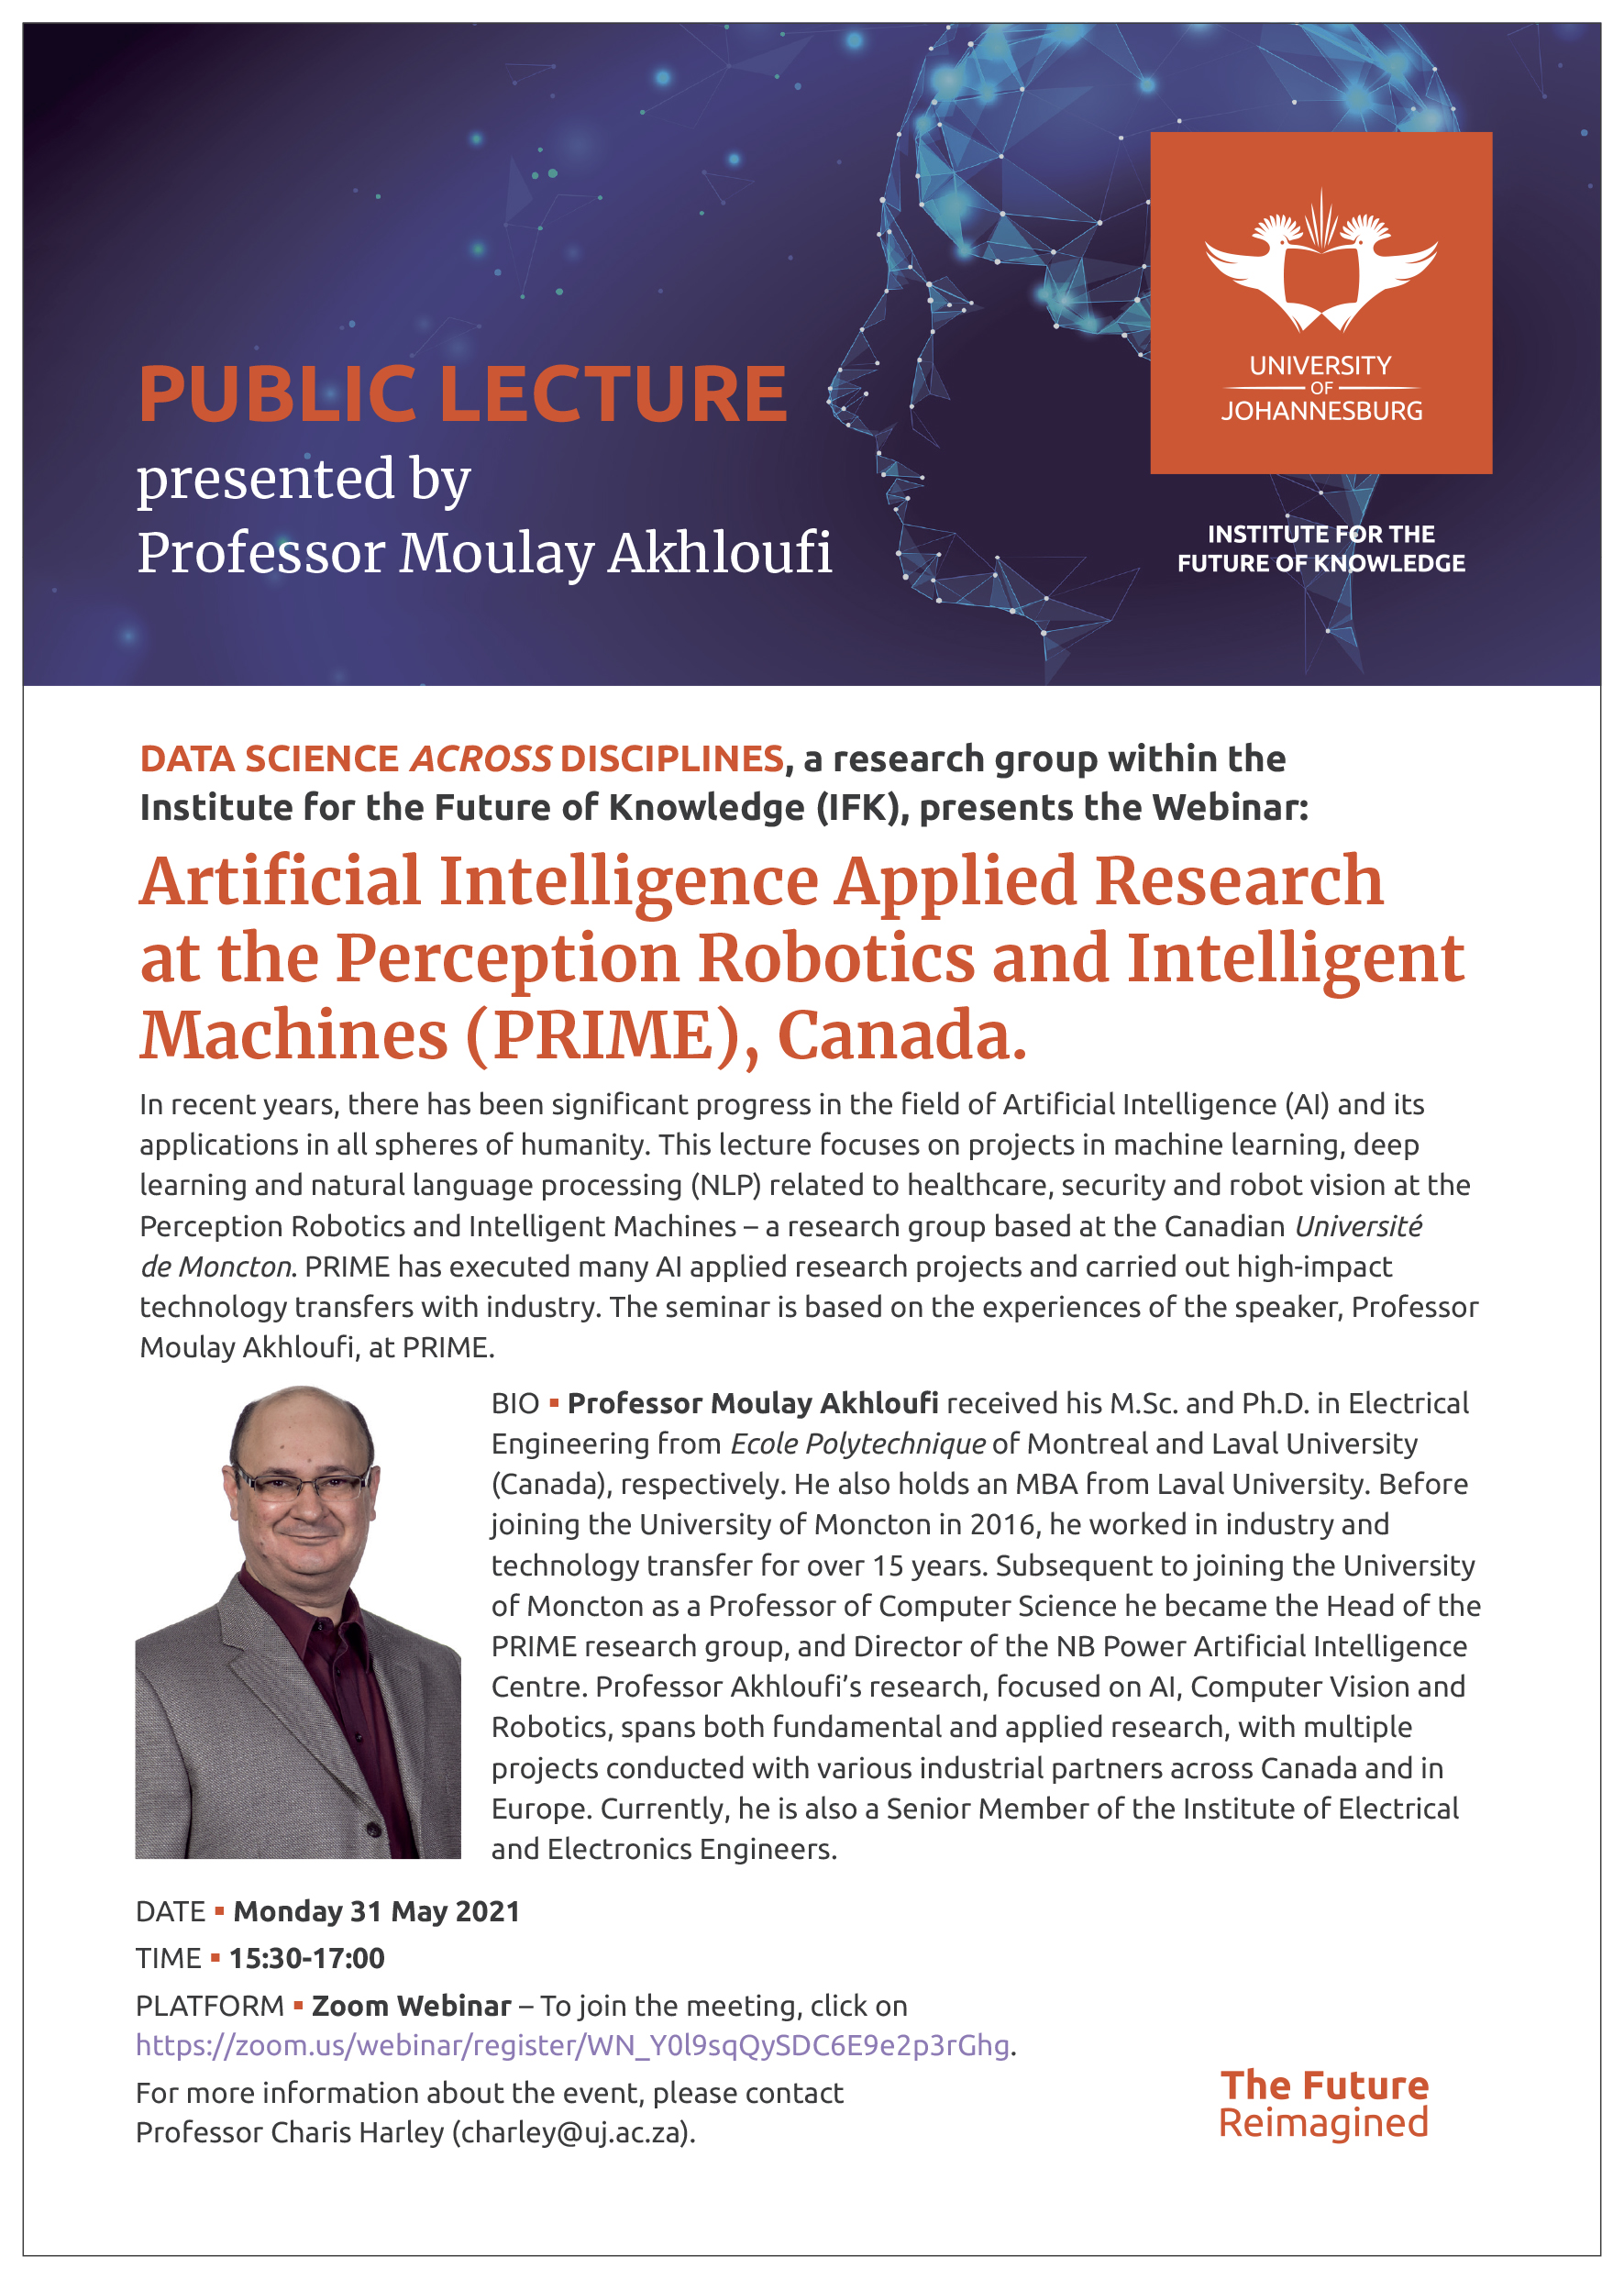 Webinar: Artificial Intelligence Applied Research at the Perception Robotics and Intelligent Machines (PRIME), Canada